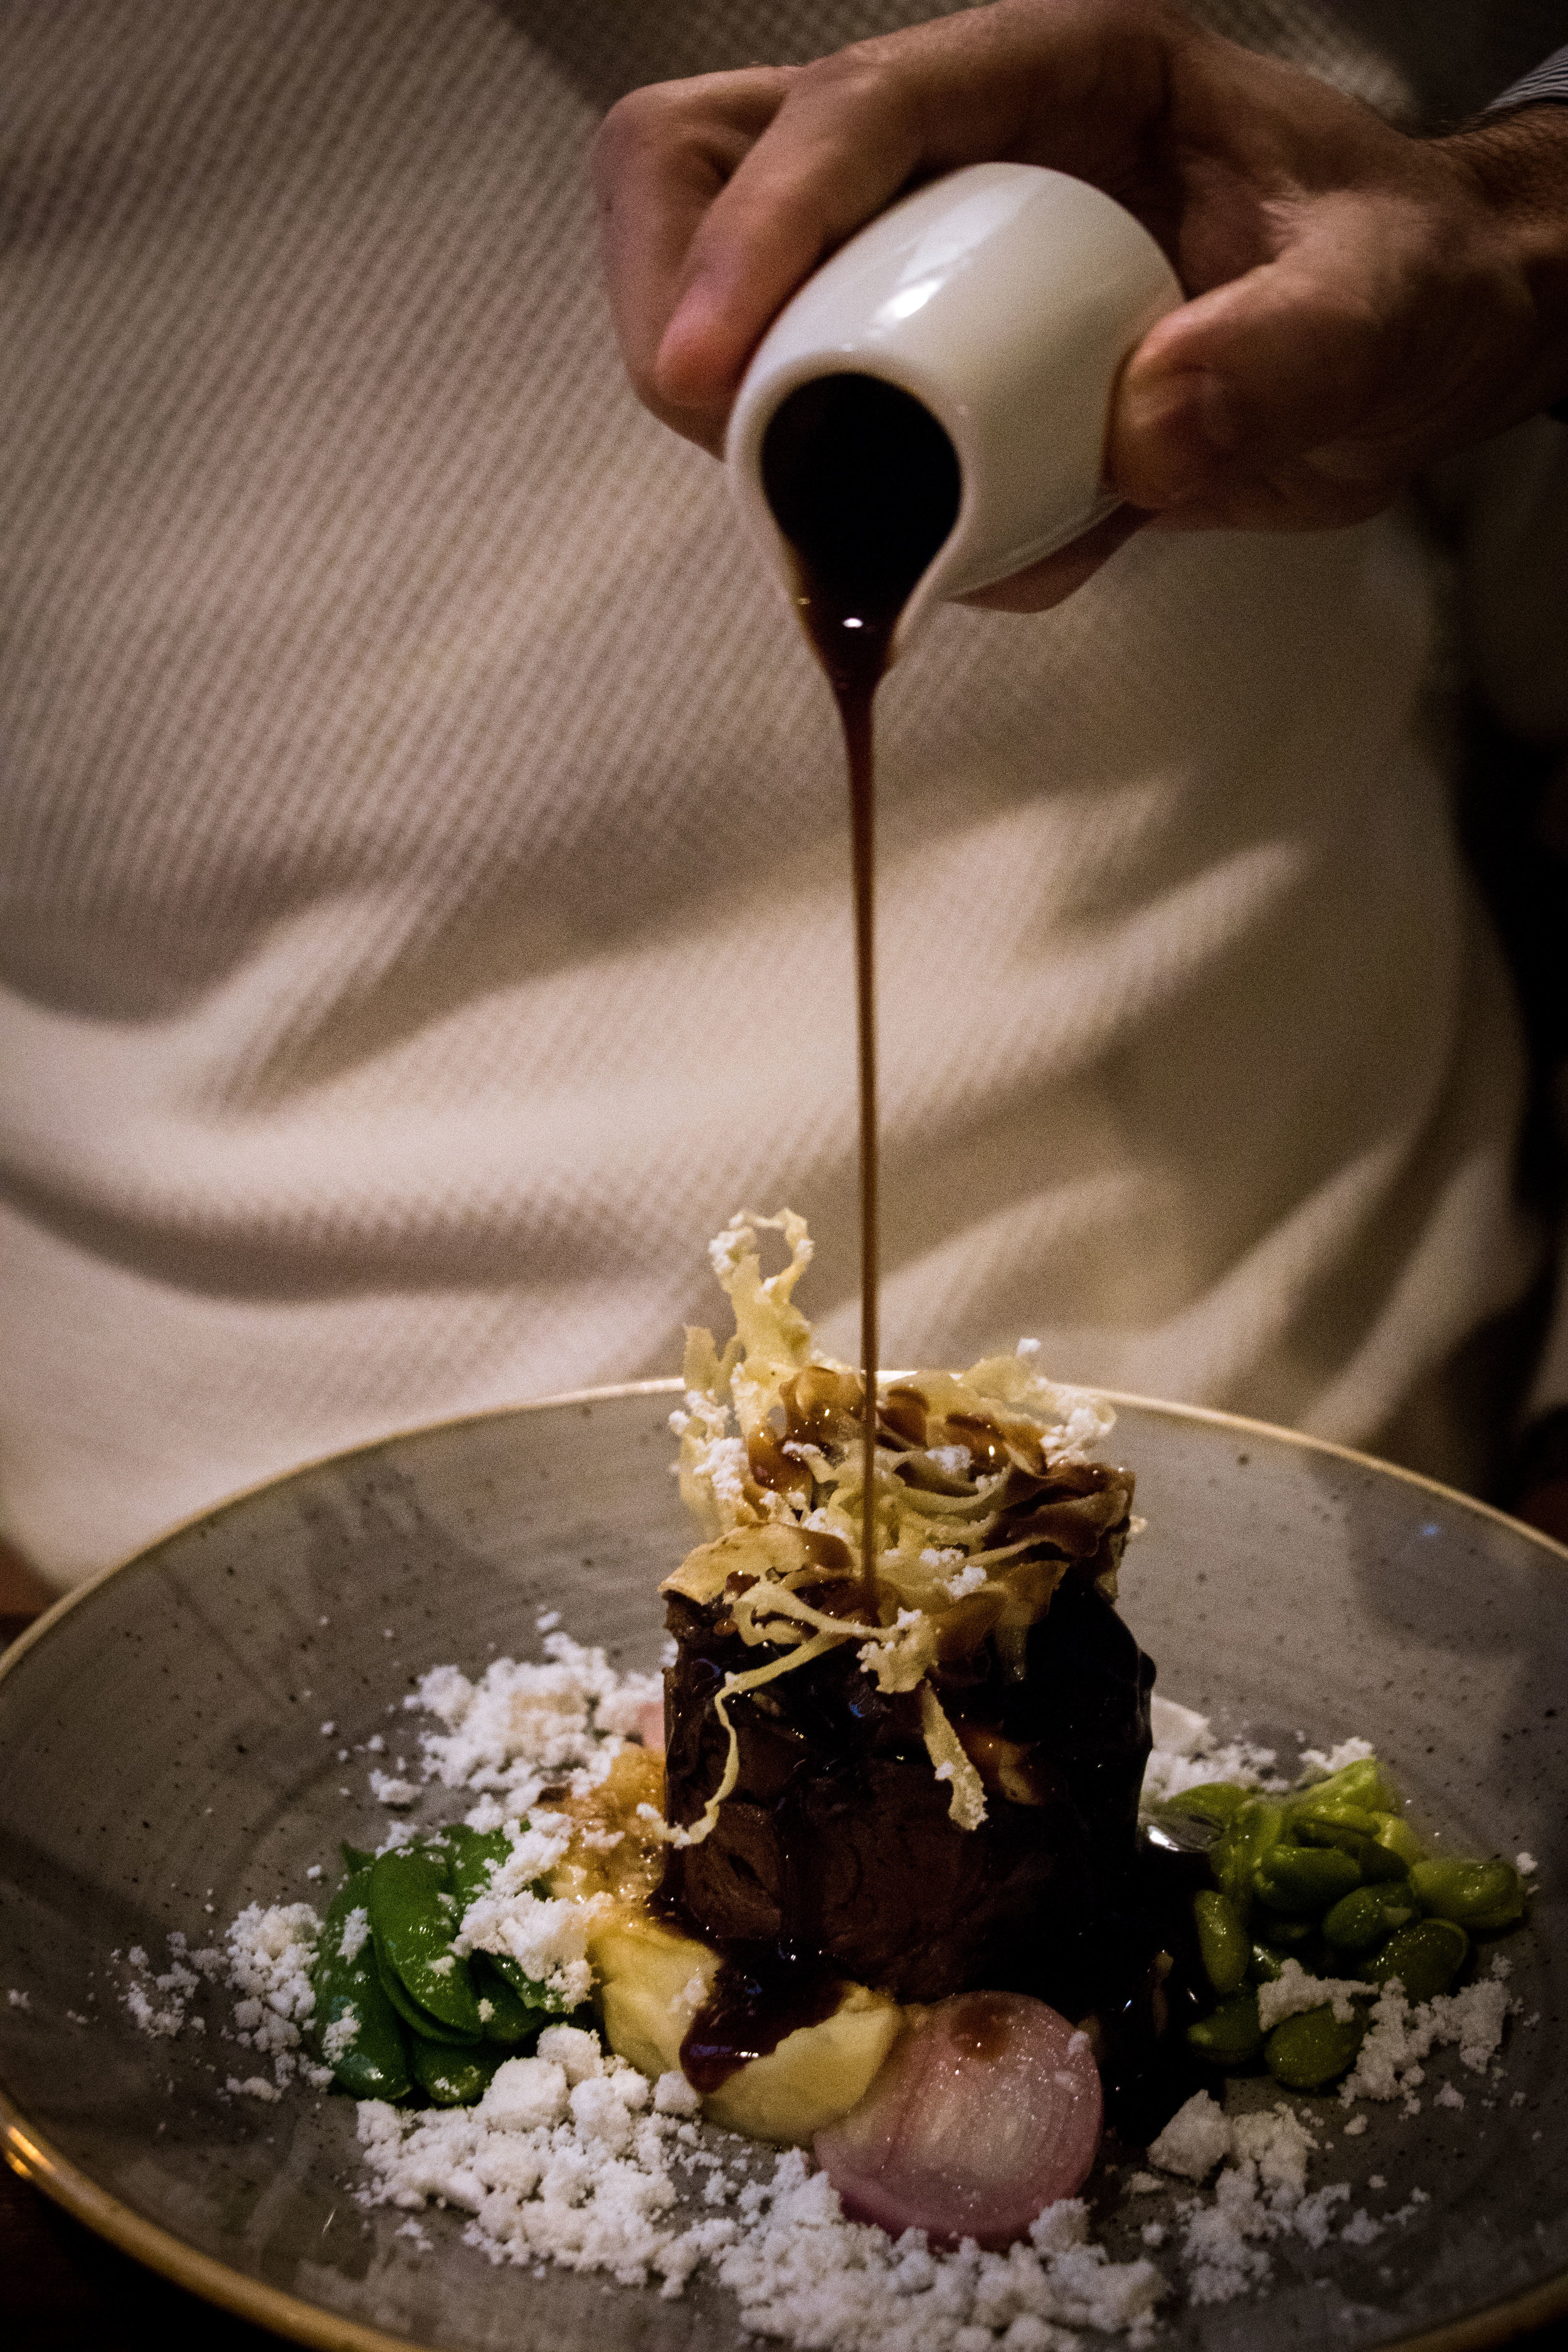 'Slow cooked short rib beef with parsnip puree, broad beans, oyster mushrooms, horseradish powder and red wine jus' (£13.25)